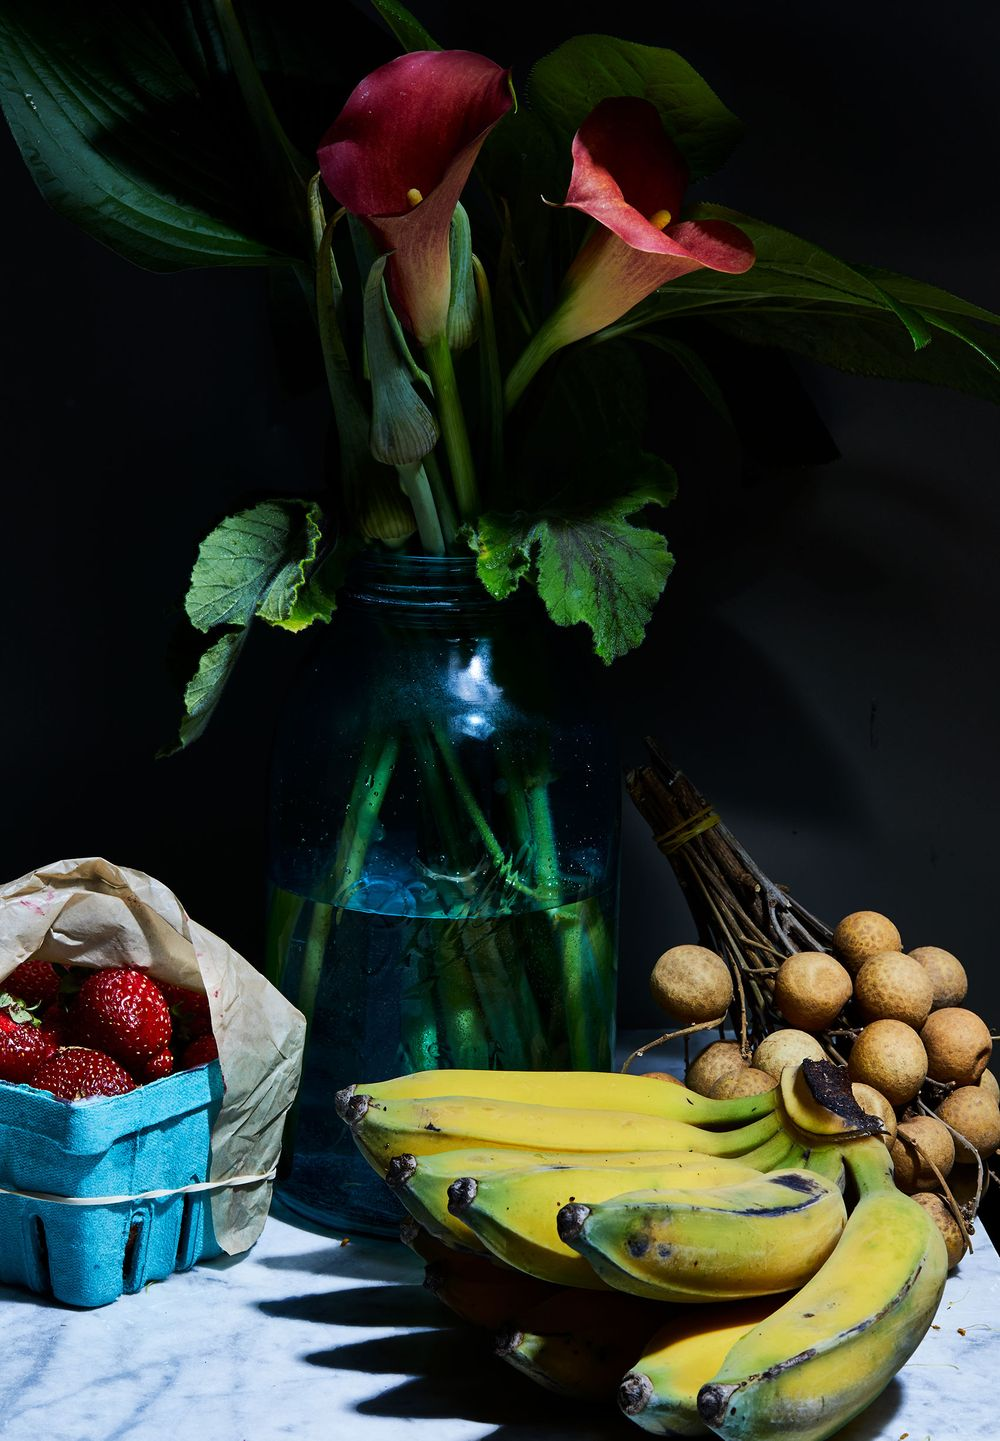 Lillies and fruit on tabletop